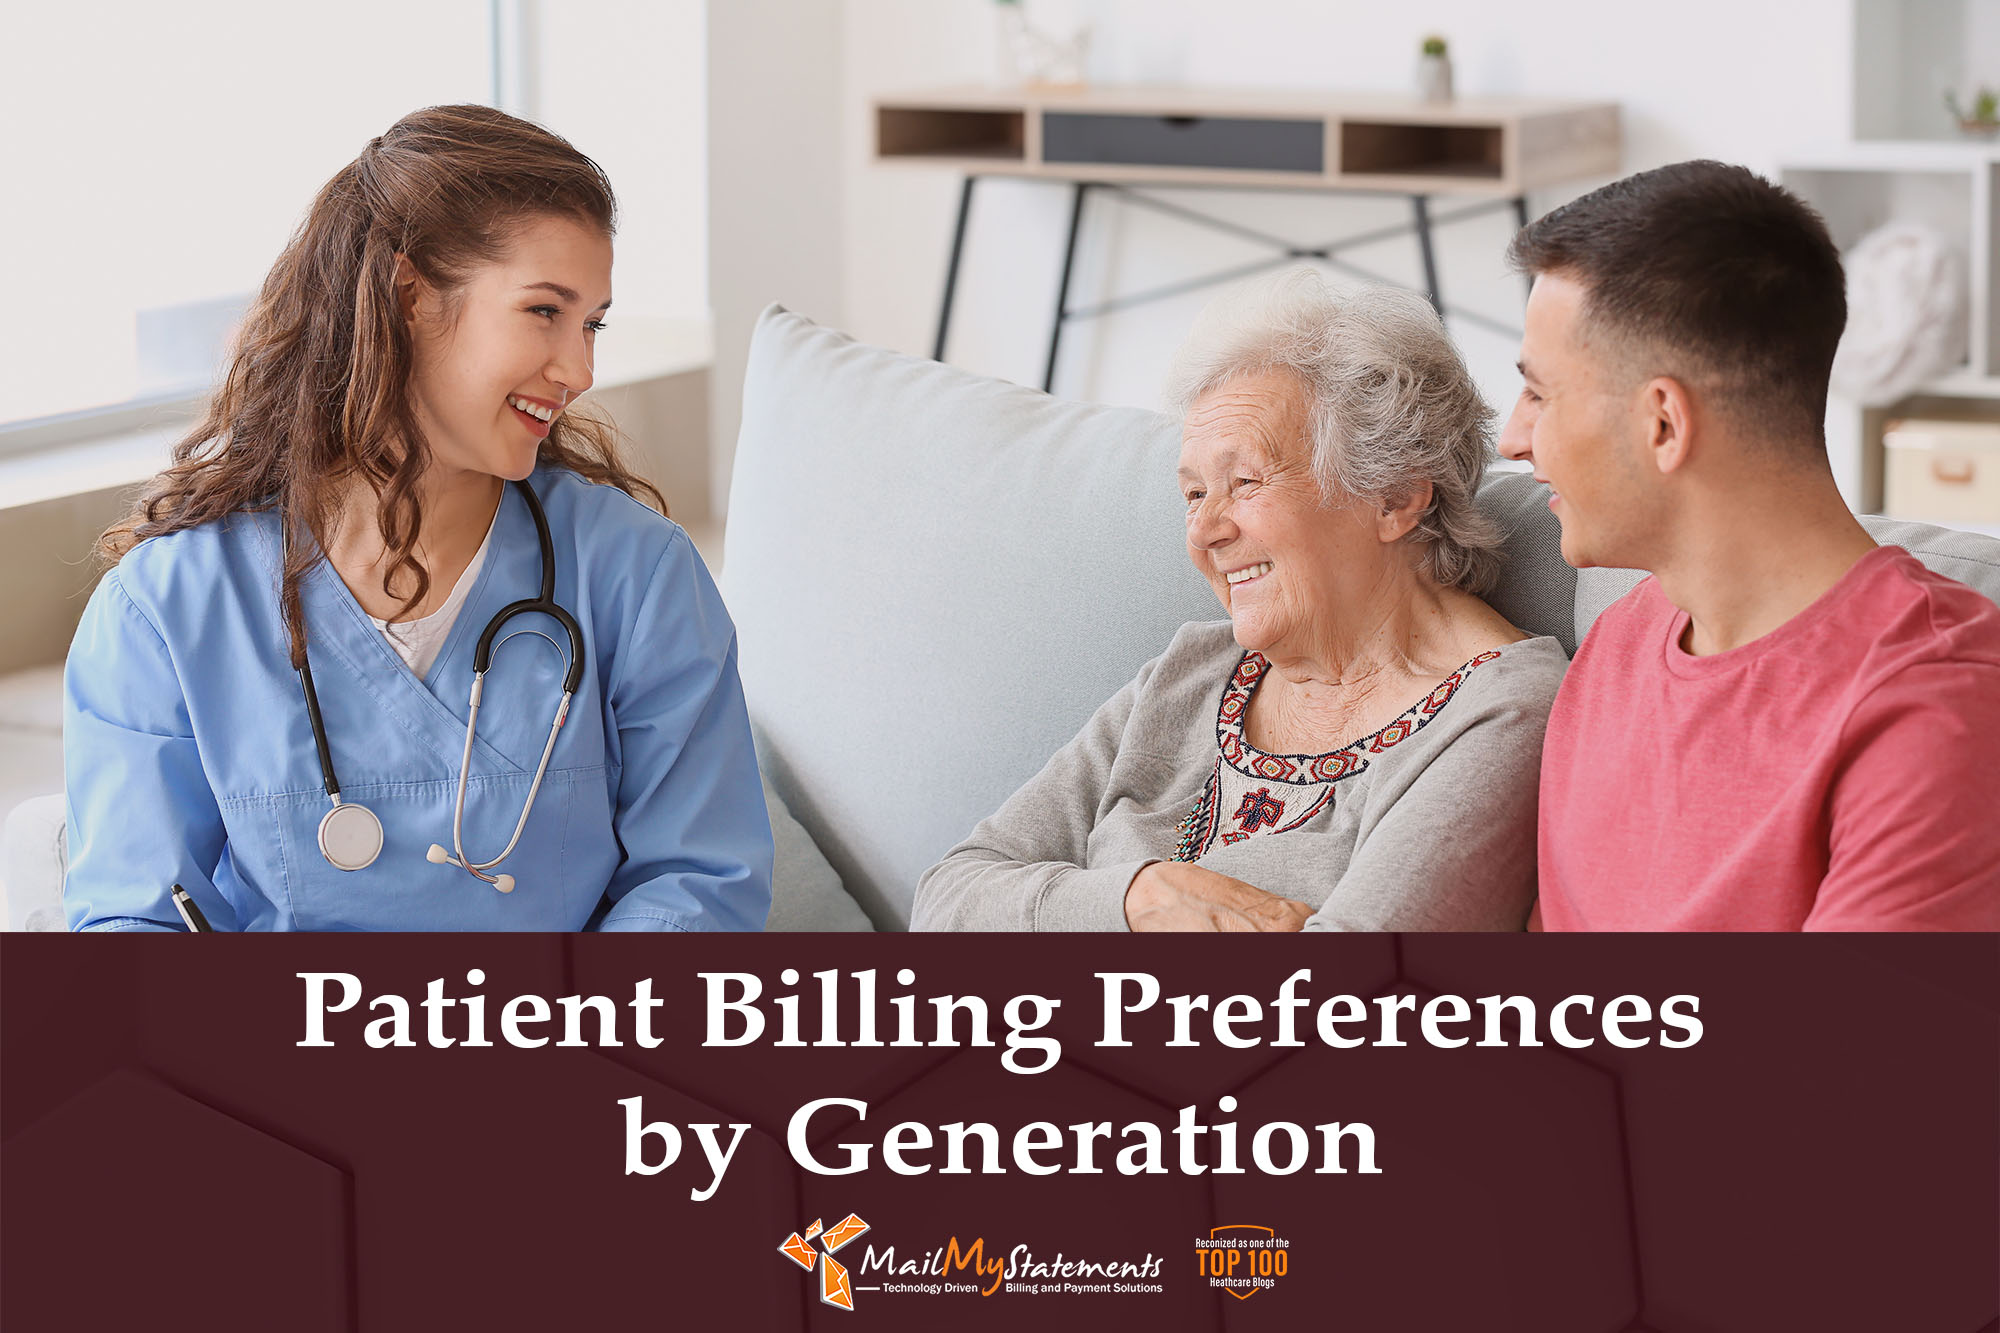 Patient Billing Preferences by Generation